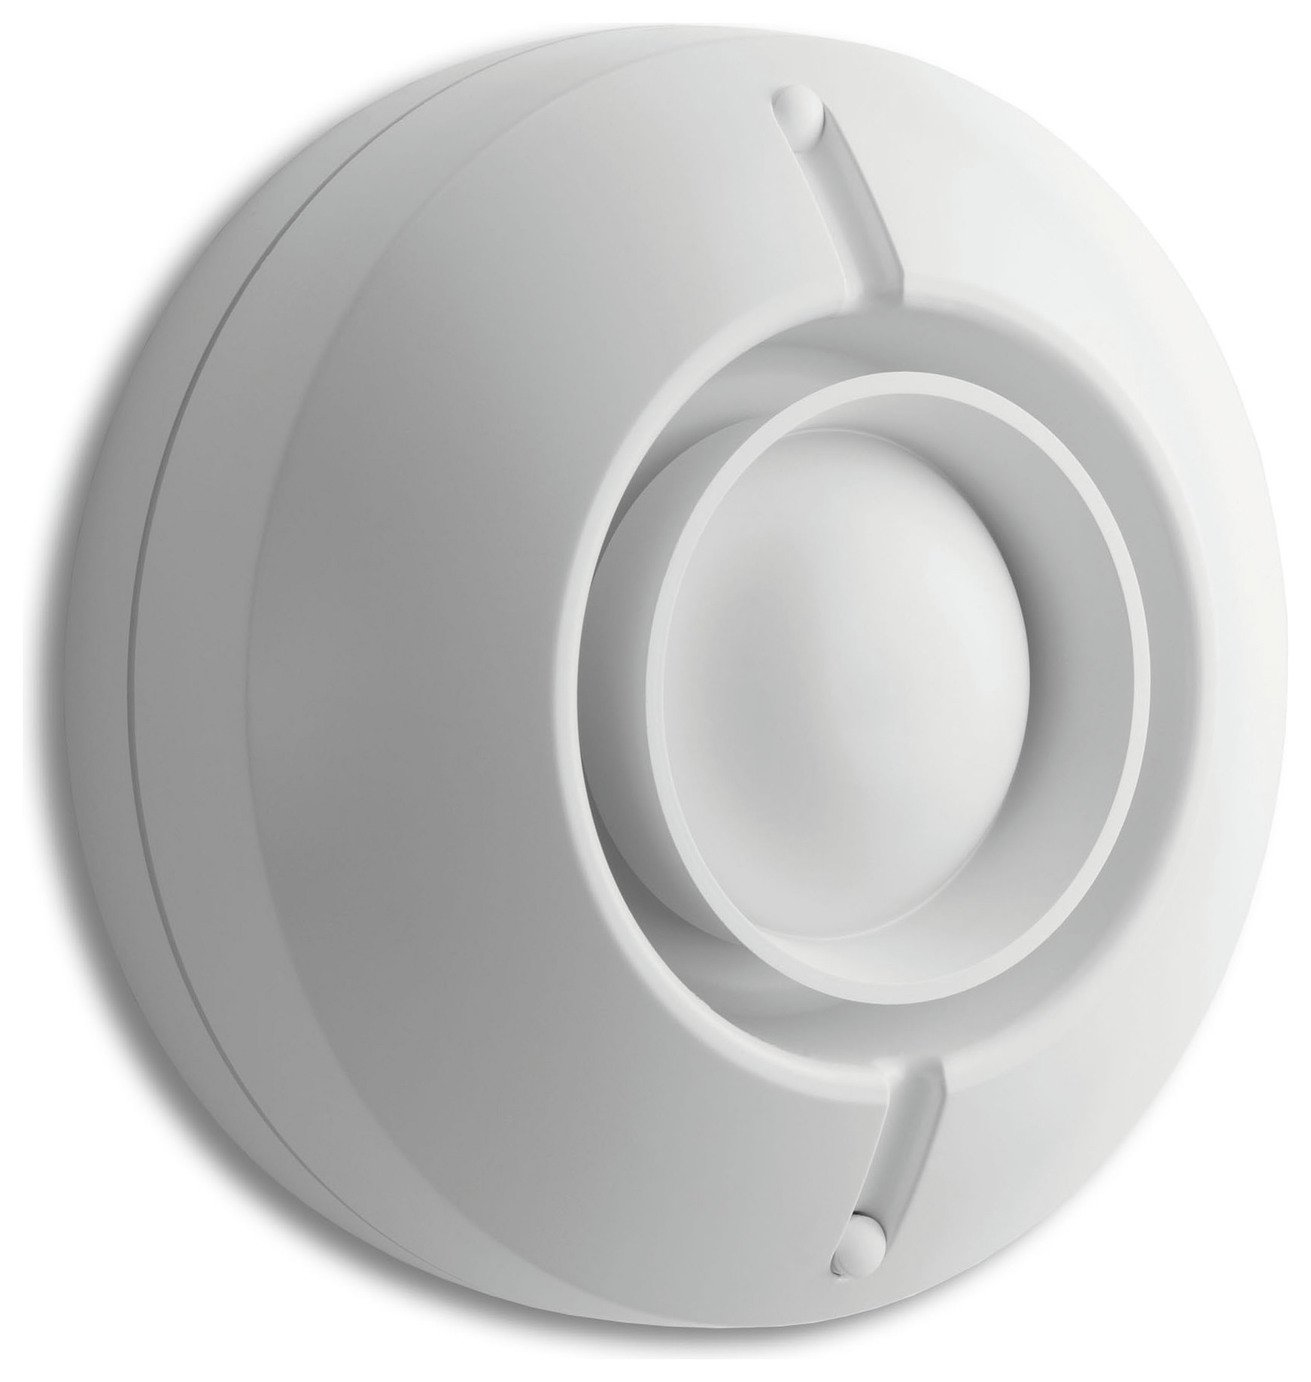 Image of Honeywell Evohome Security Internal Battery Operated Siren